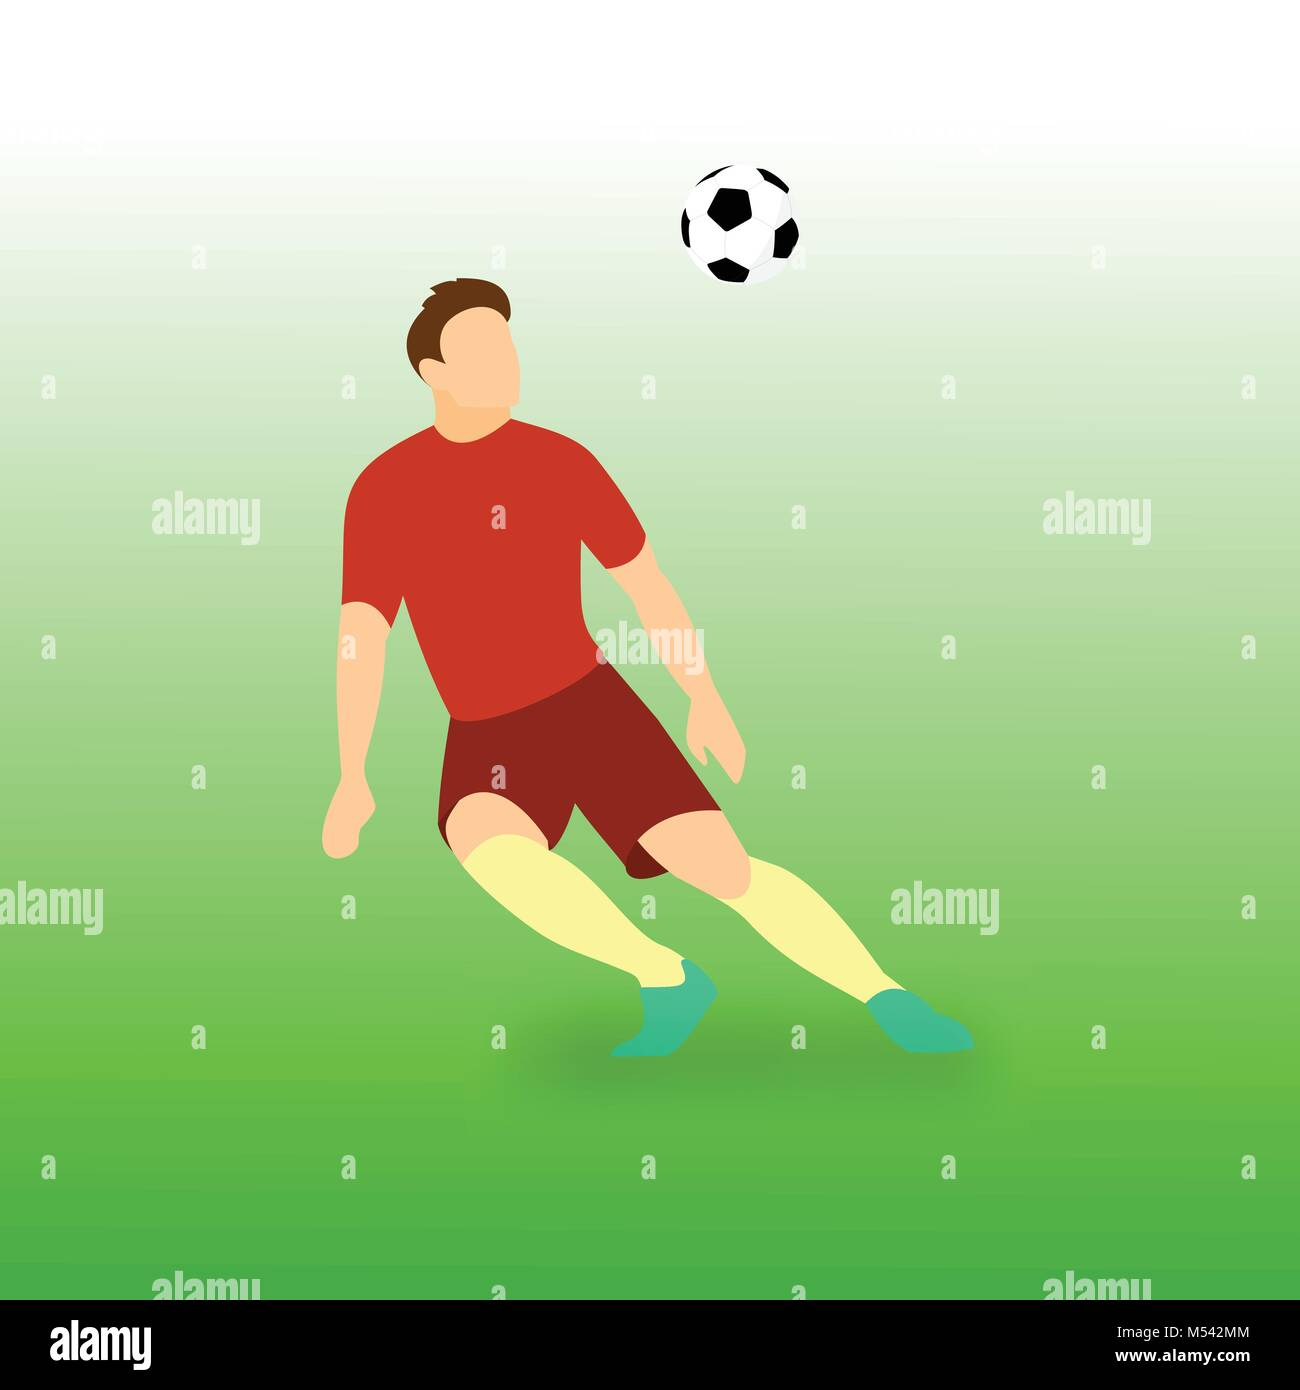 Control Incoming Ball Football Player Vector Illustration Graphic Design - Stock Vector